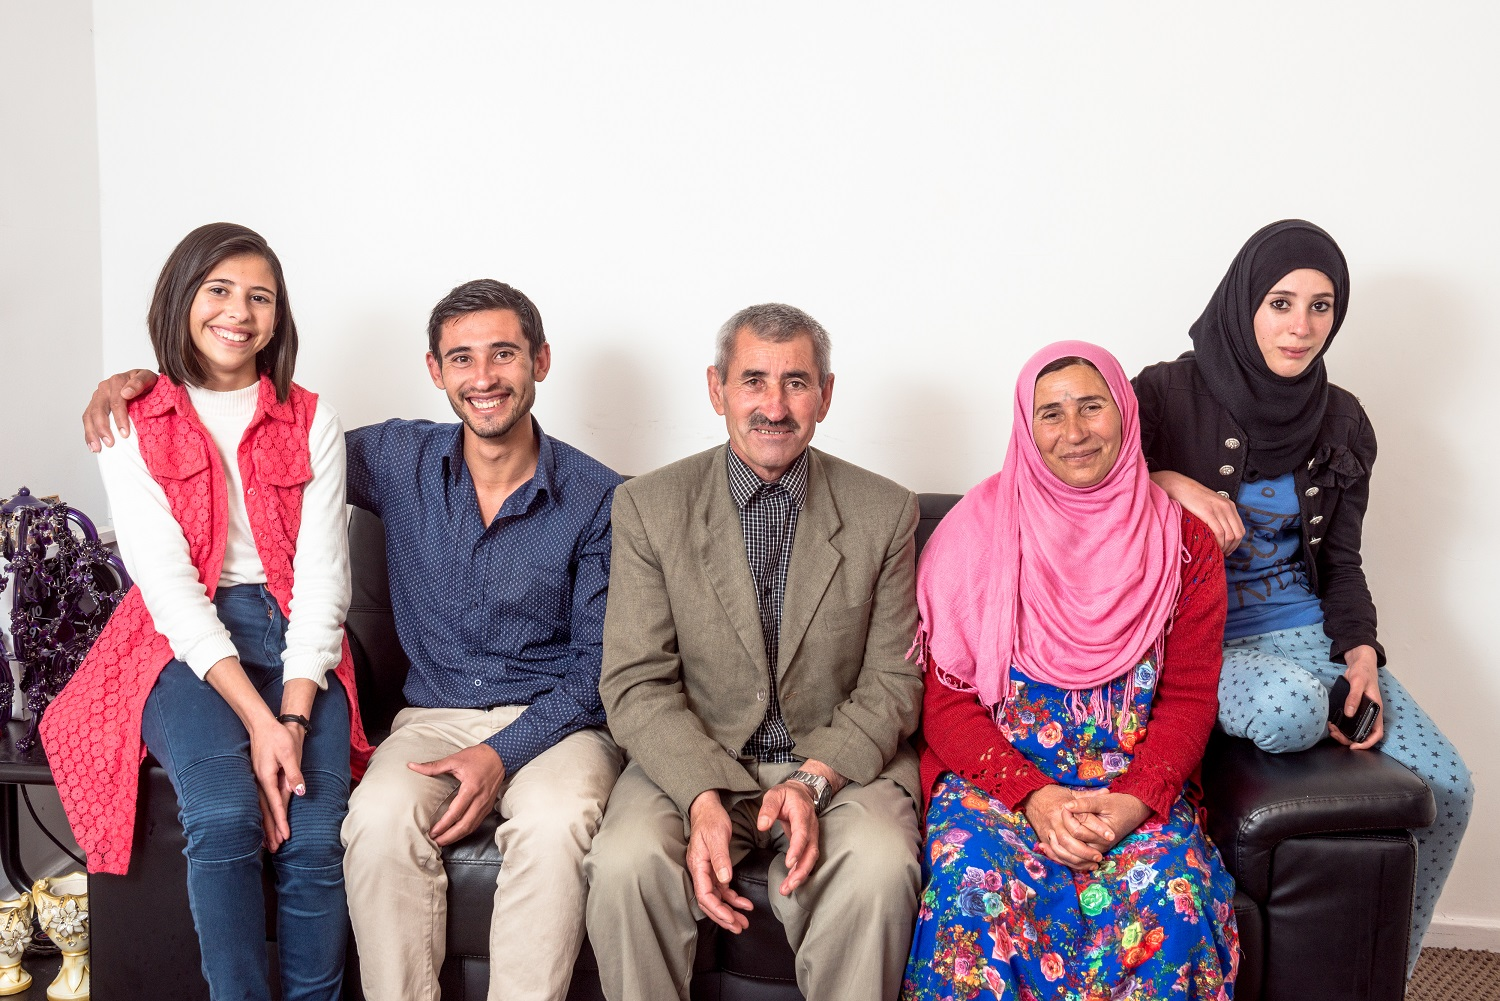 A Syrian refugee family sit on a sofa in their new home in the UK. On the far left sits their youngest daughter who is twelve. Next to her is their son is twenty-one. Then there is the father and mother, followed by the older daughter who is sixteen. The family are smiling and looking hopeful.